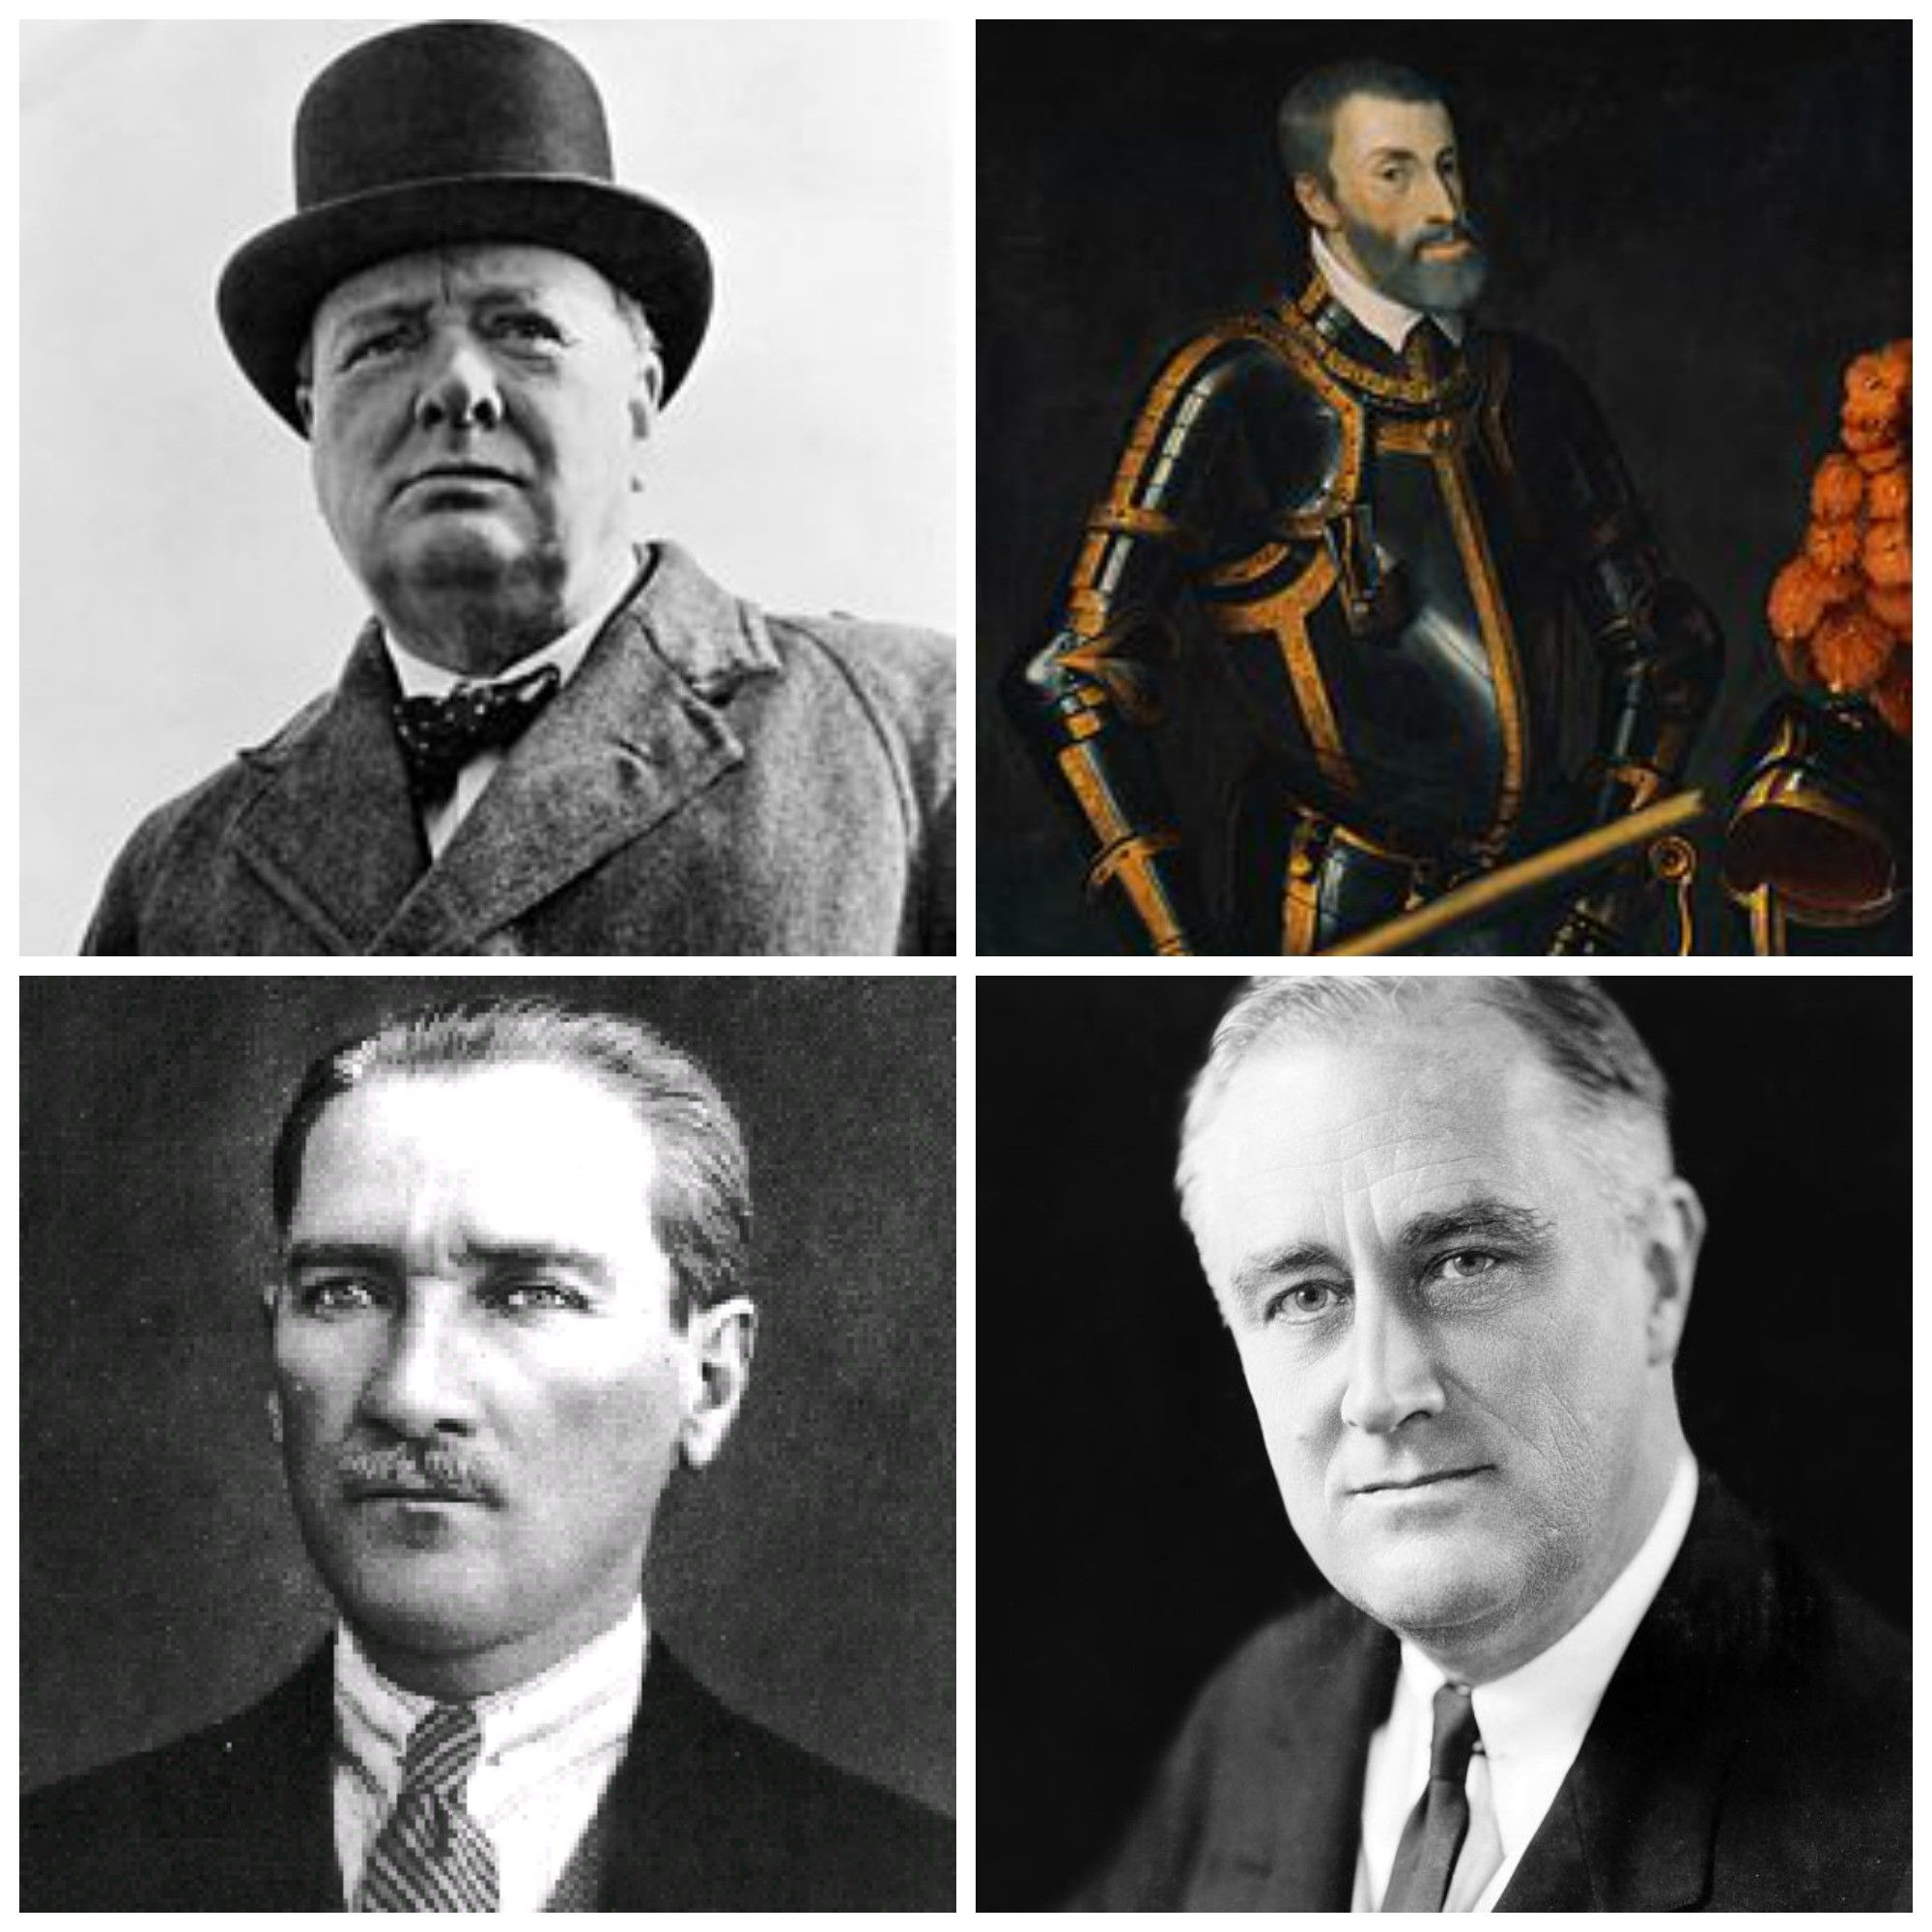 Wef best of davos 8 leadership lessons from history